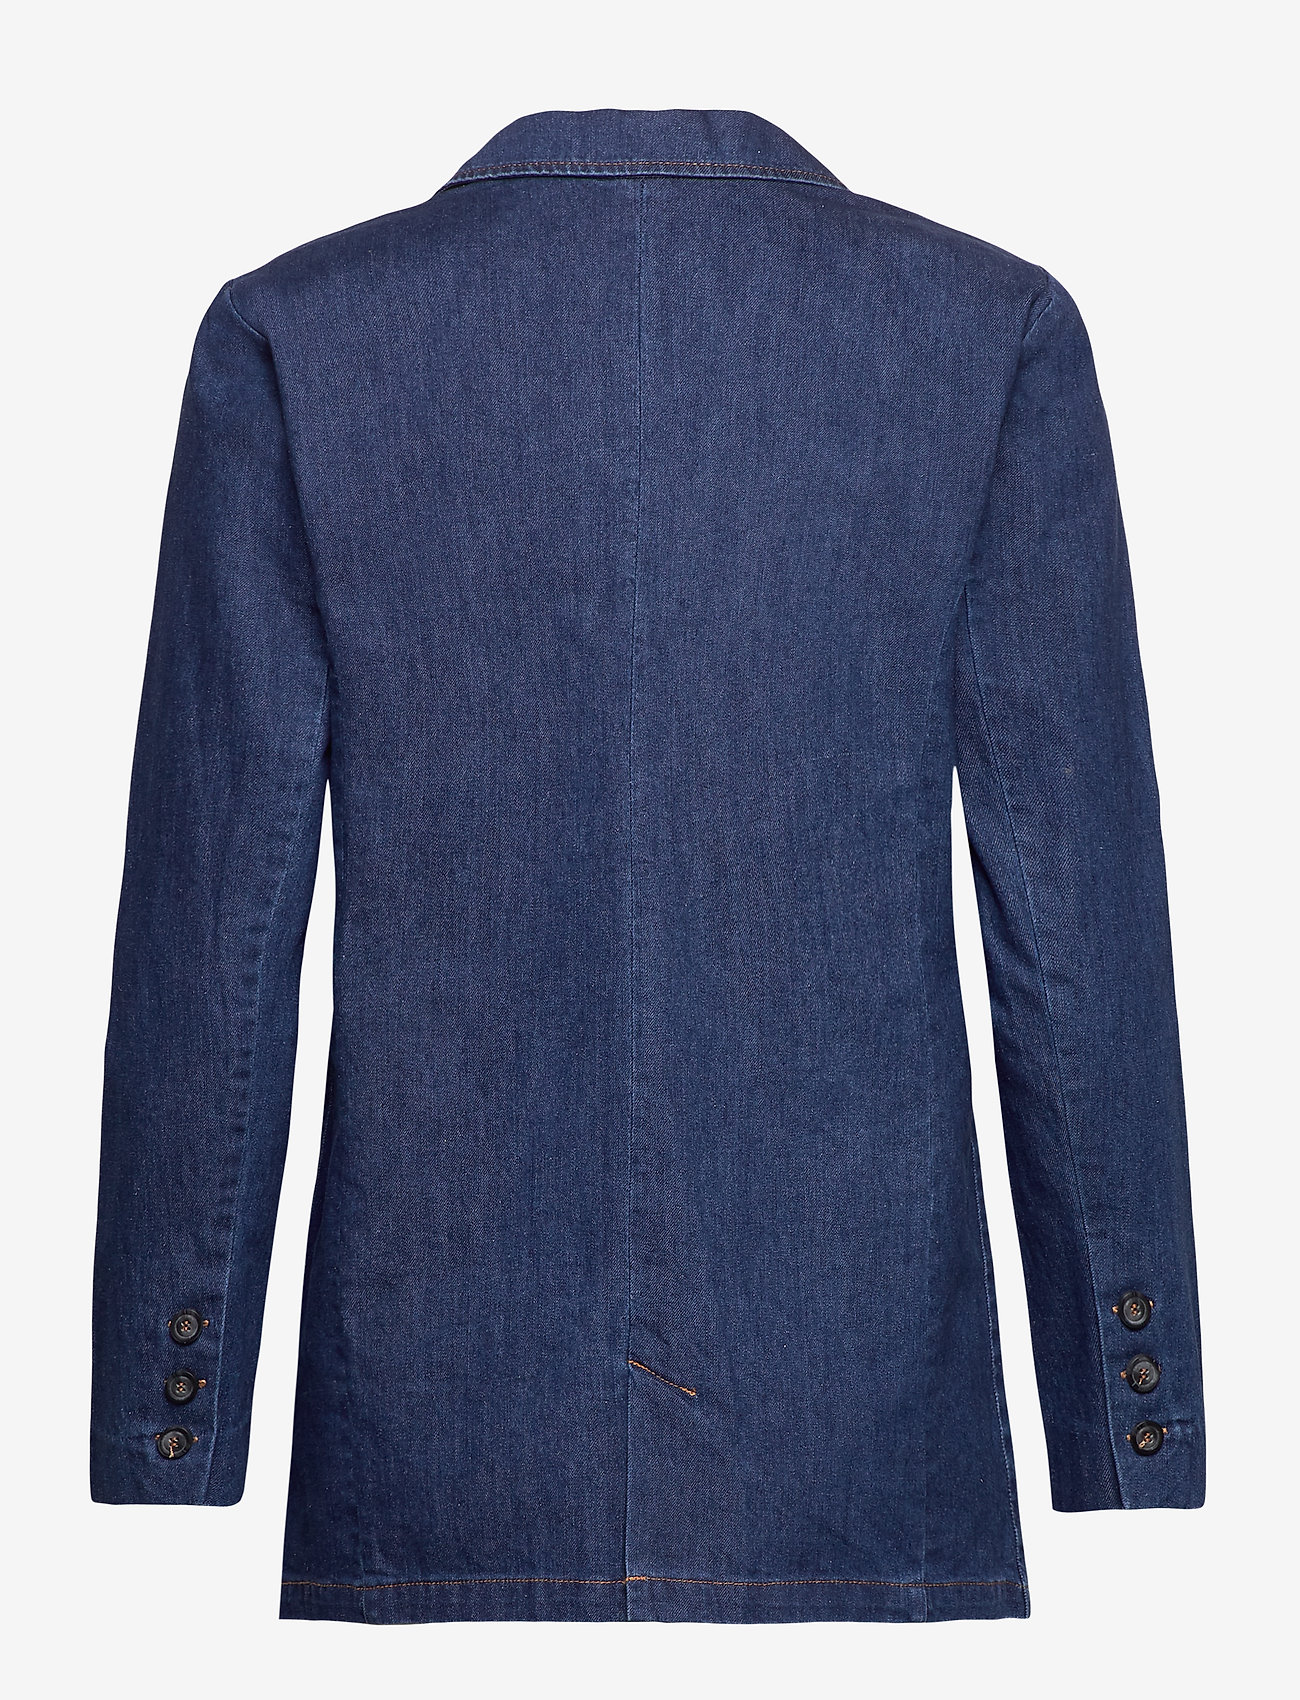 Coster Copenhagen - Suit jacket in denim - bleiserit - raw dark blue - 1